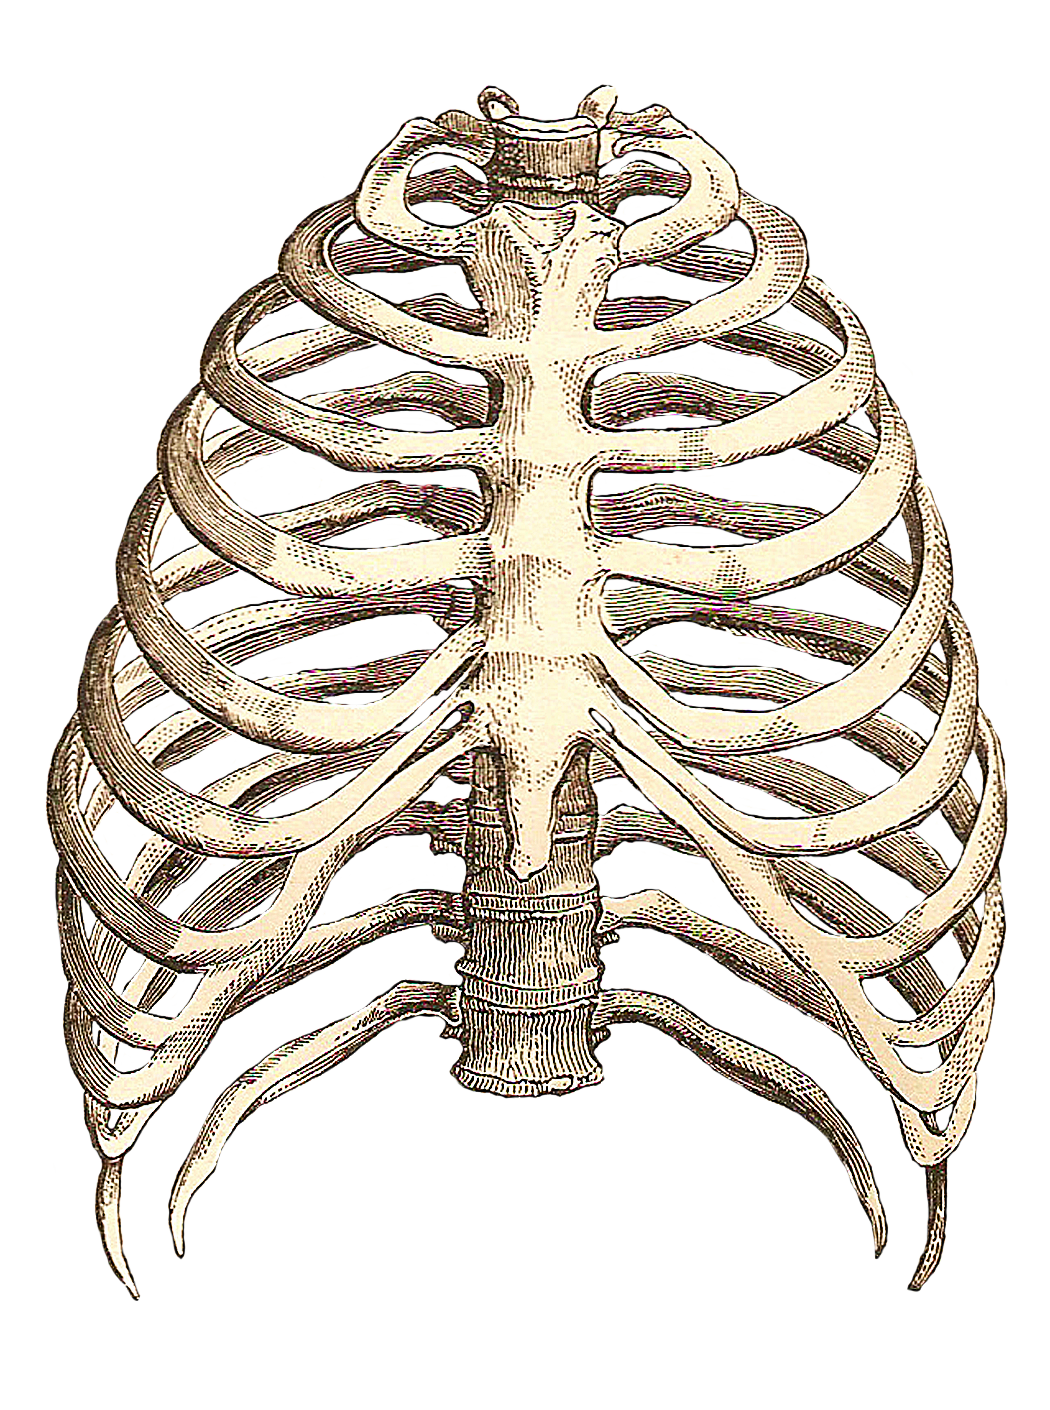 Human rib cage drawing. Skeleton clipart empty